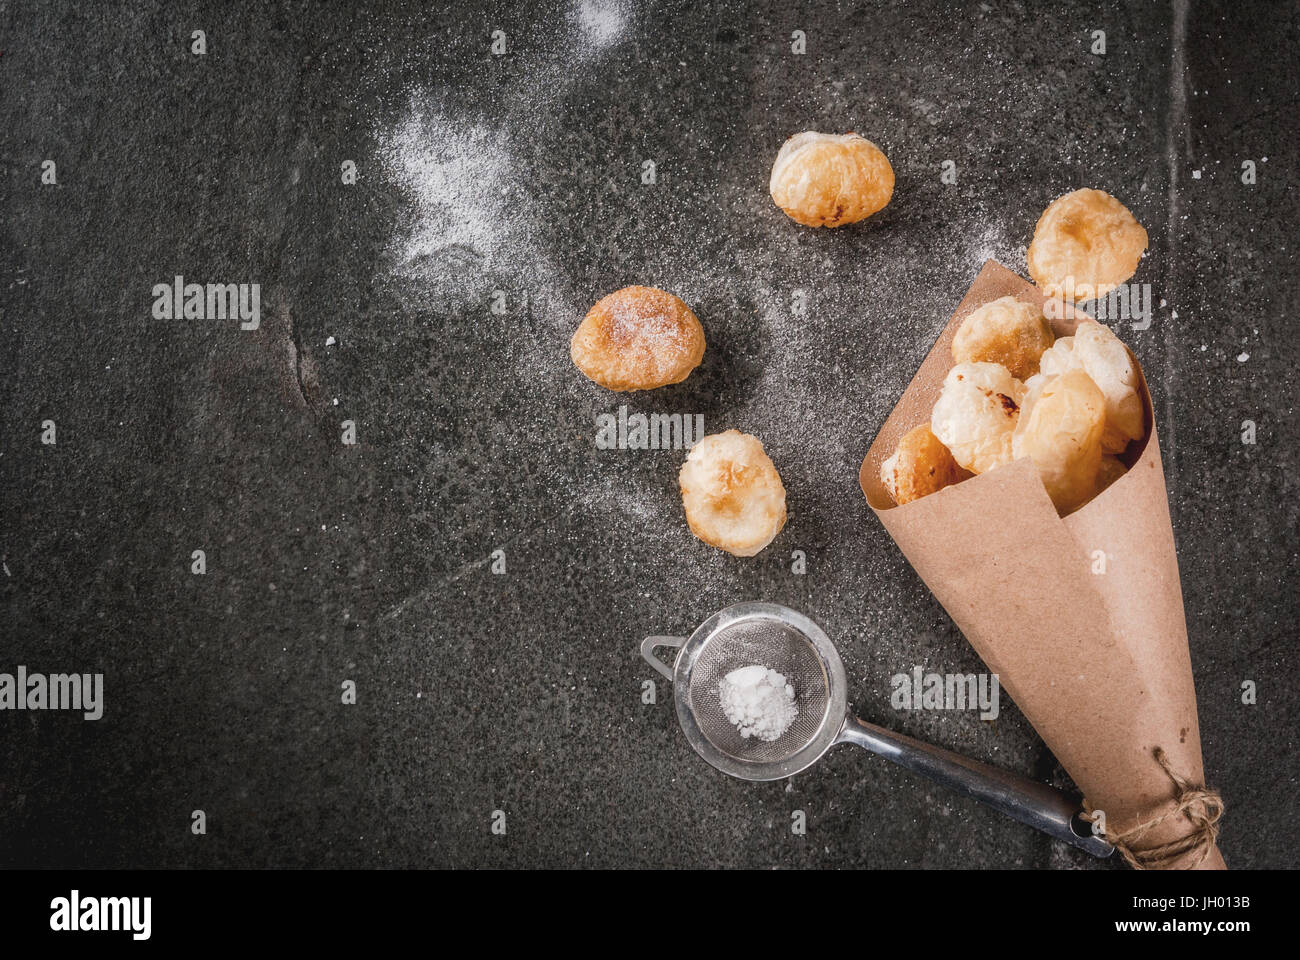 Homemade baking, puff pastries. Trendy food. Cronuts popcorn, puff donuts holes, in paper bag, with powdered sugar. - Stock Image